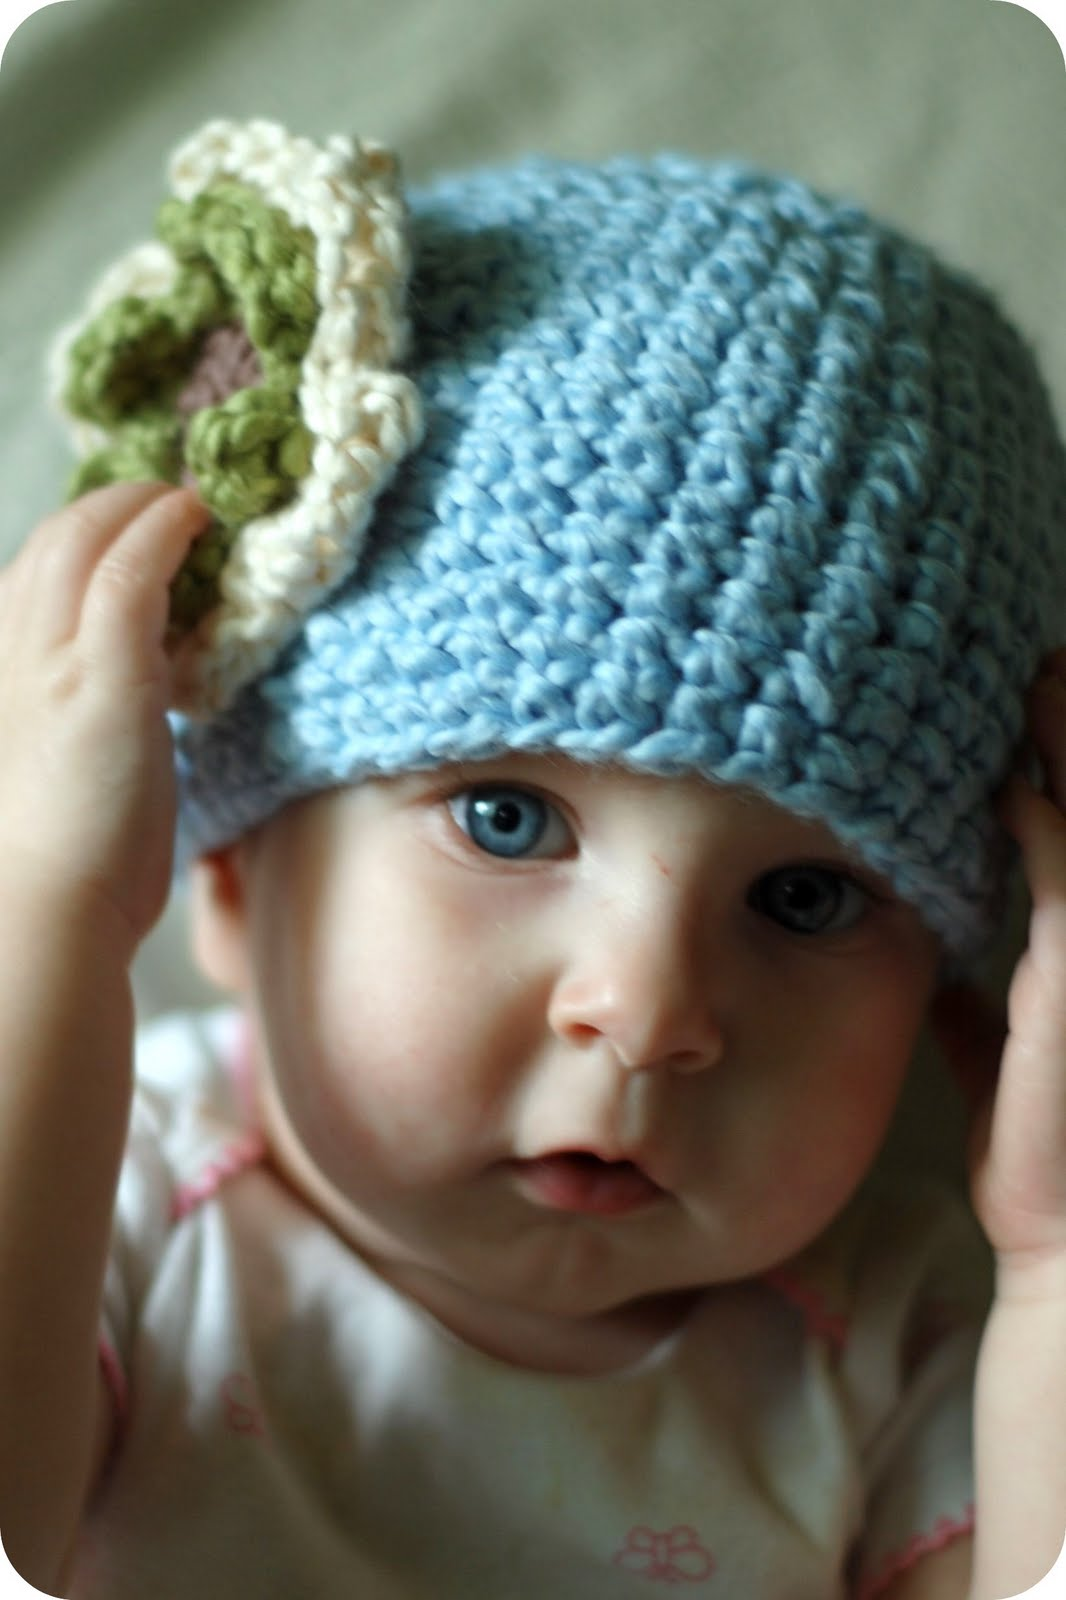 Crochet Hat Patterns Flowers : The Sitting Tree: Free Crochet Pattern: Organic Cotton ...